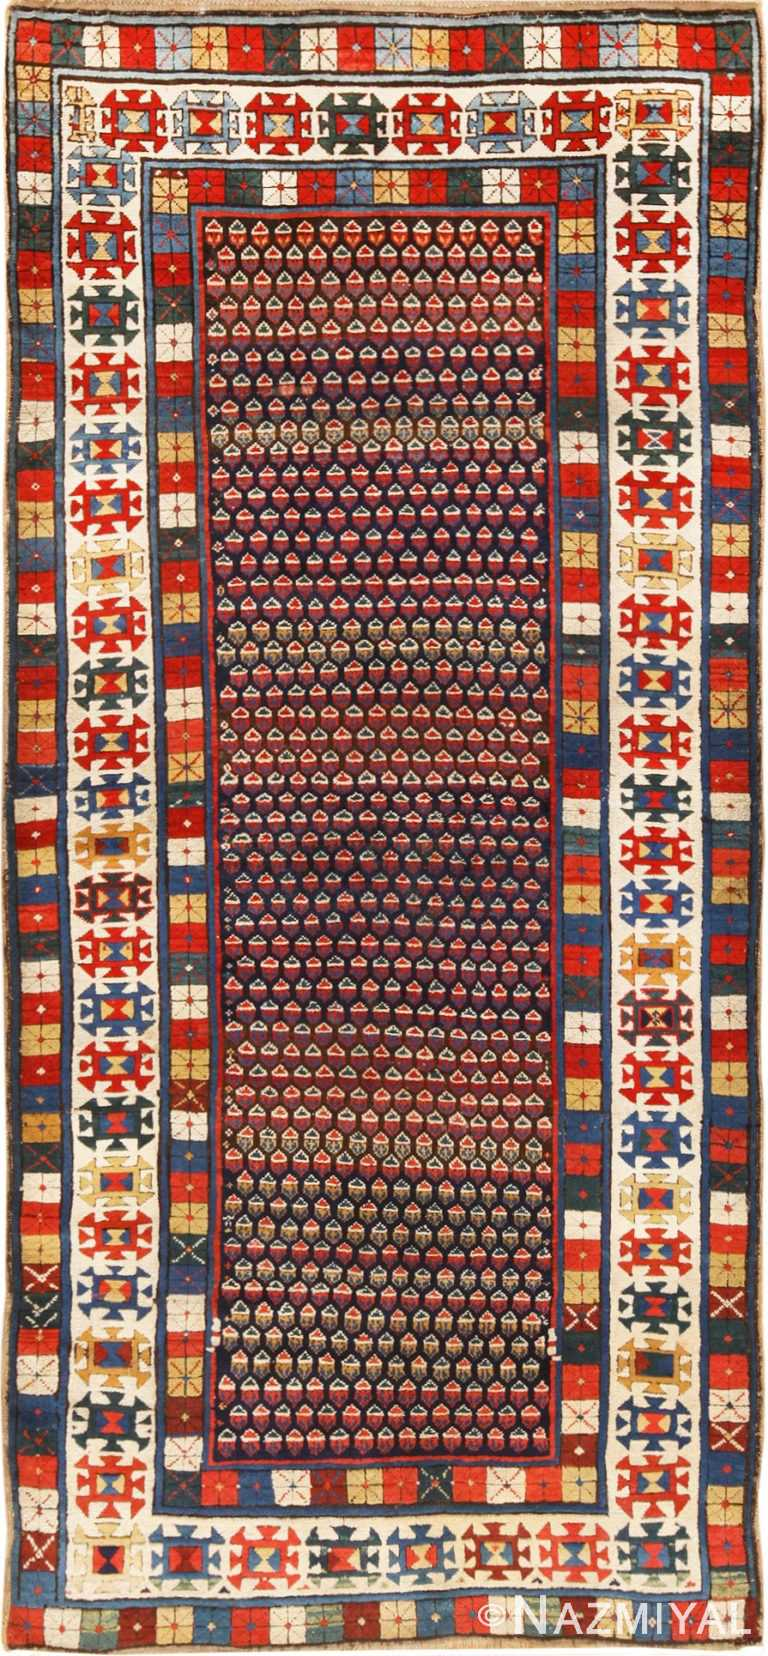 Antique Caucasian Talish Runner Rug 49934 by Nazmiyal NYC